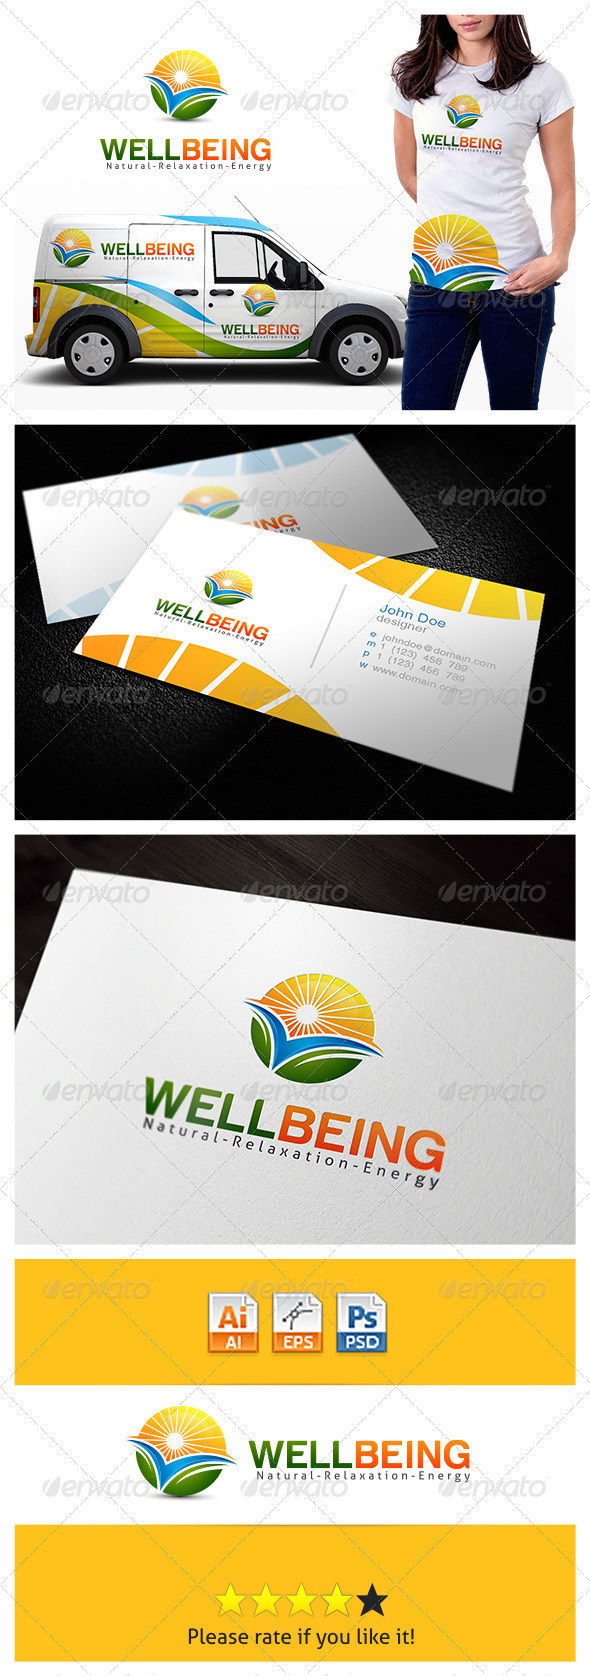 Wellbeing Relaxation Logo - Nature Logo Templates